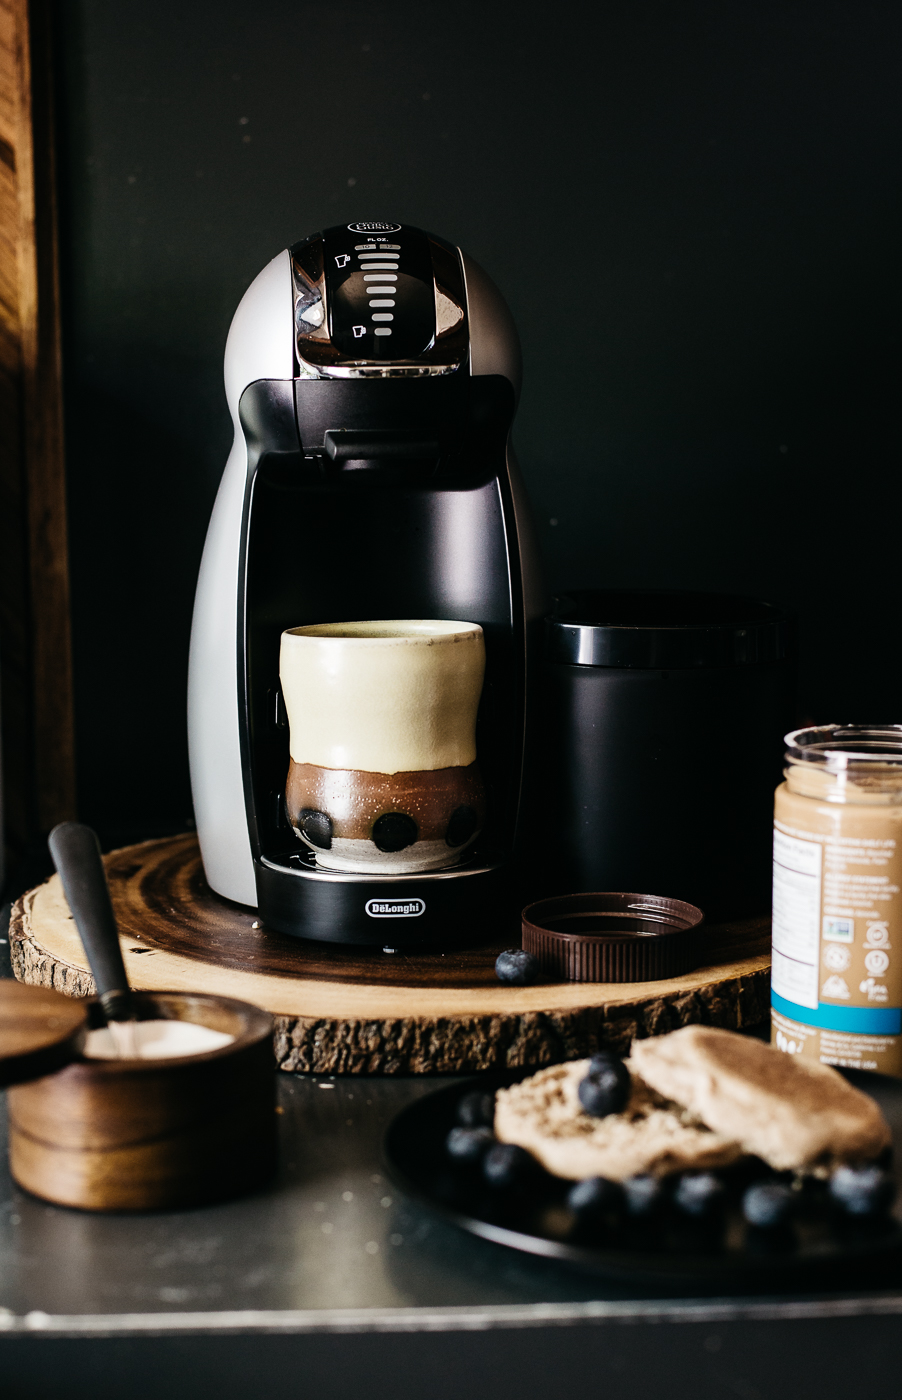 nescafe dolce gusto, at home coffee maker, lifestyle blog, morning rituals, the kentucky gent